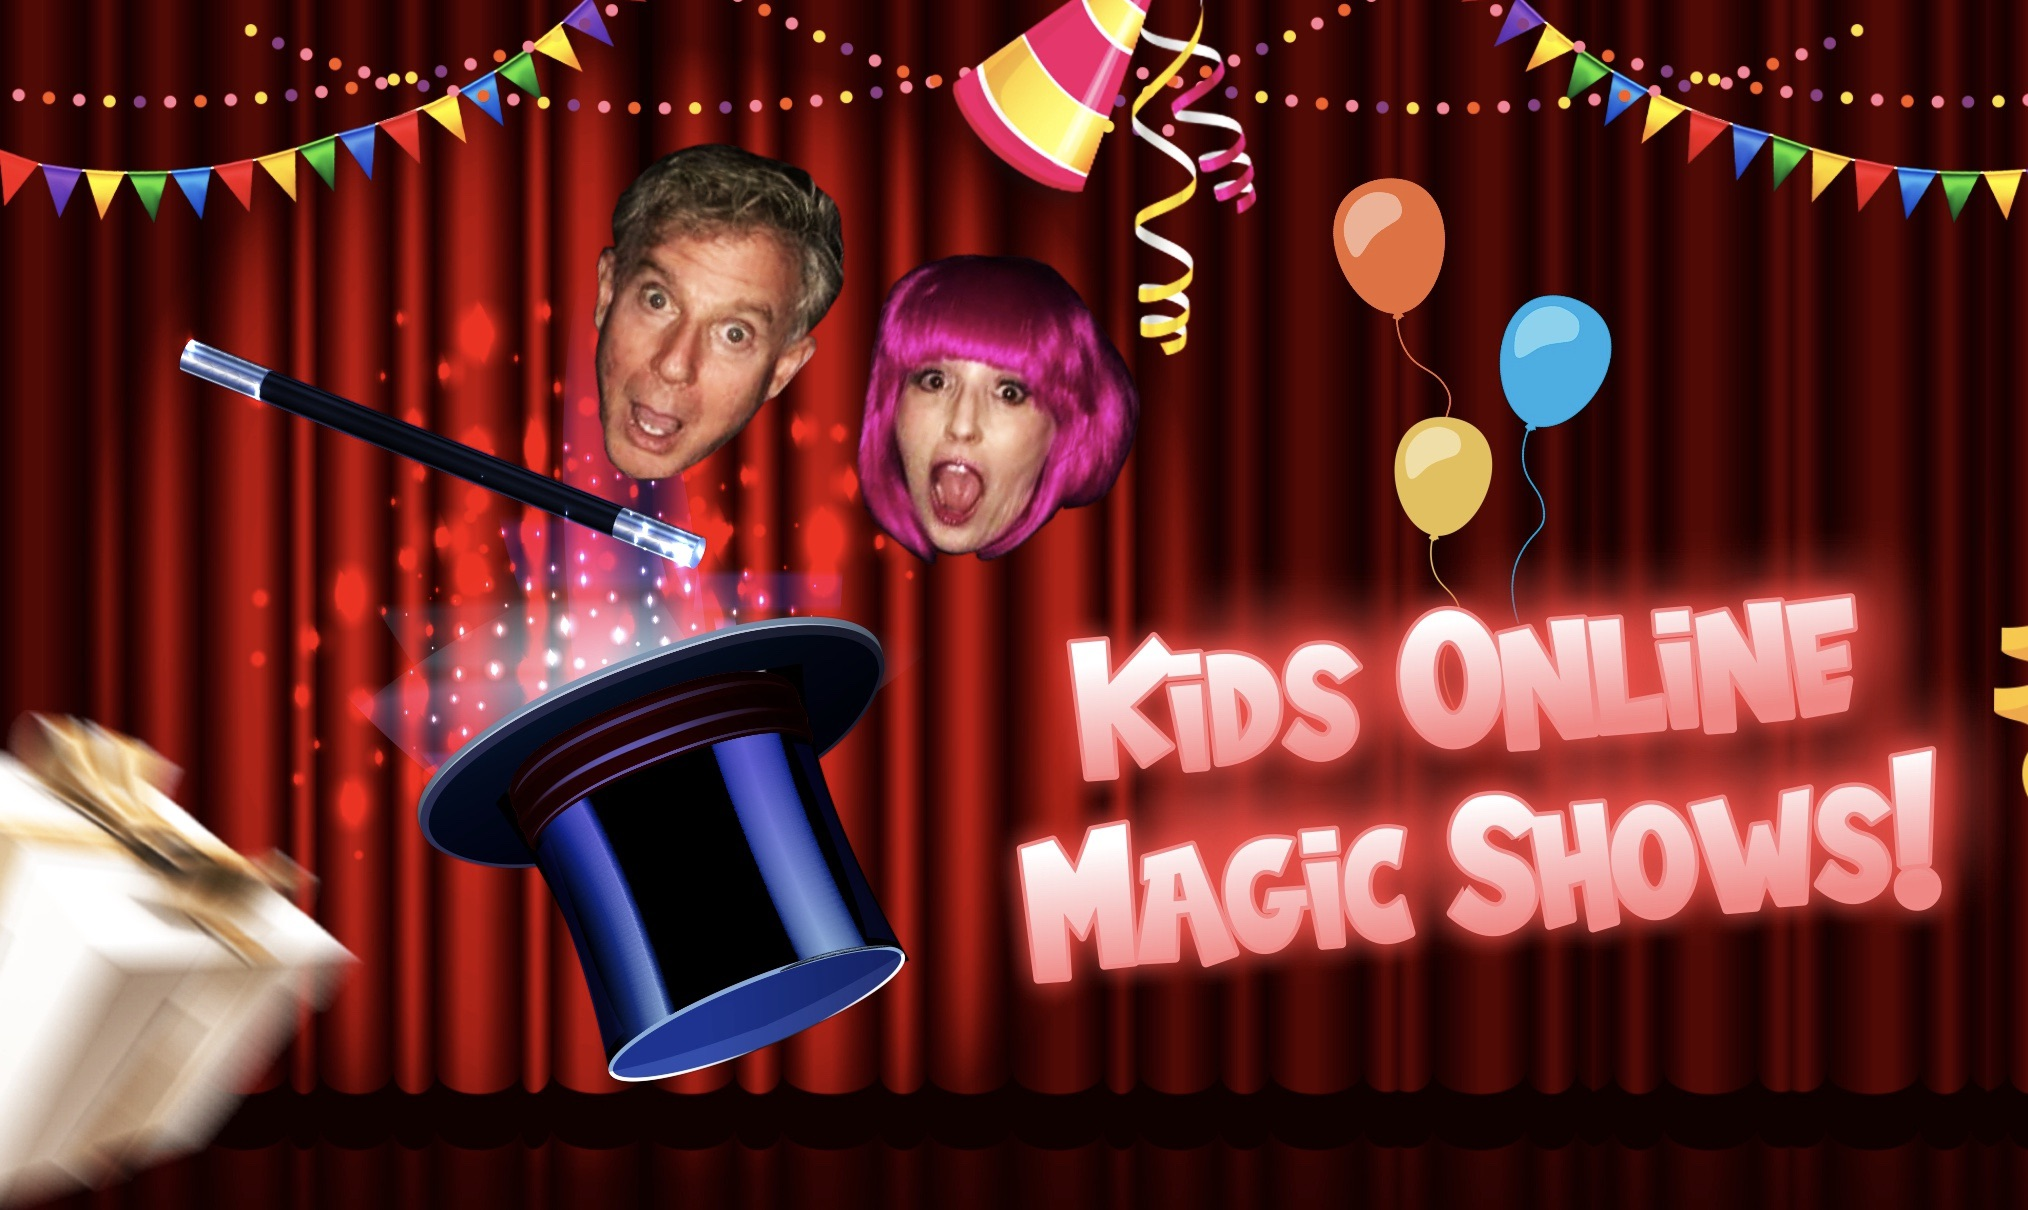 kids-online-magic-shows